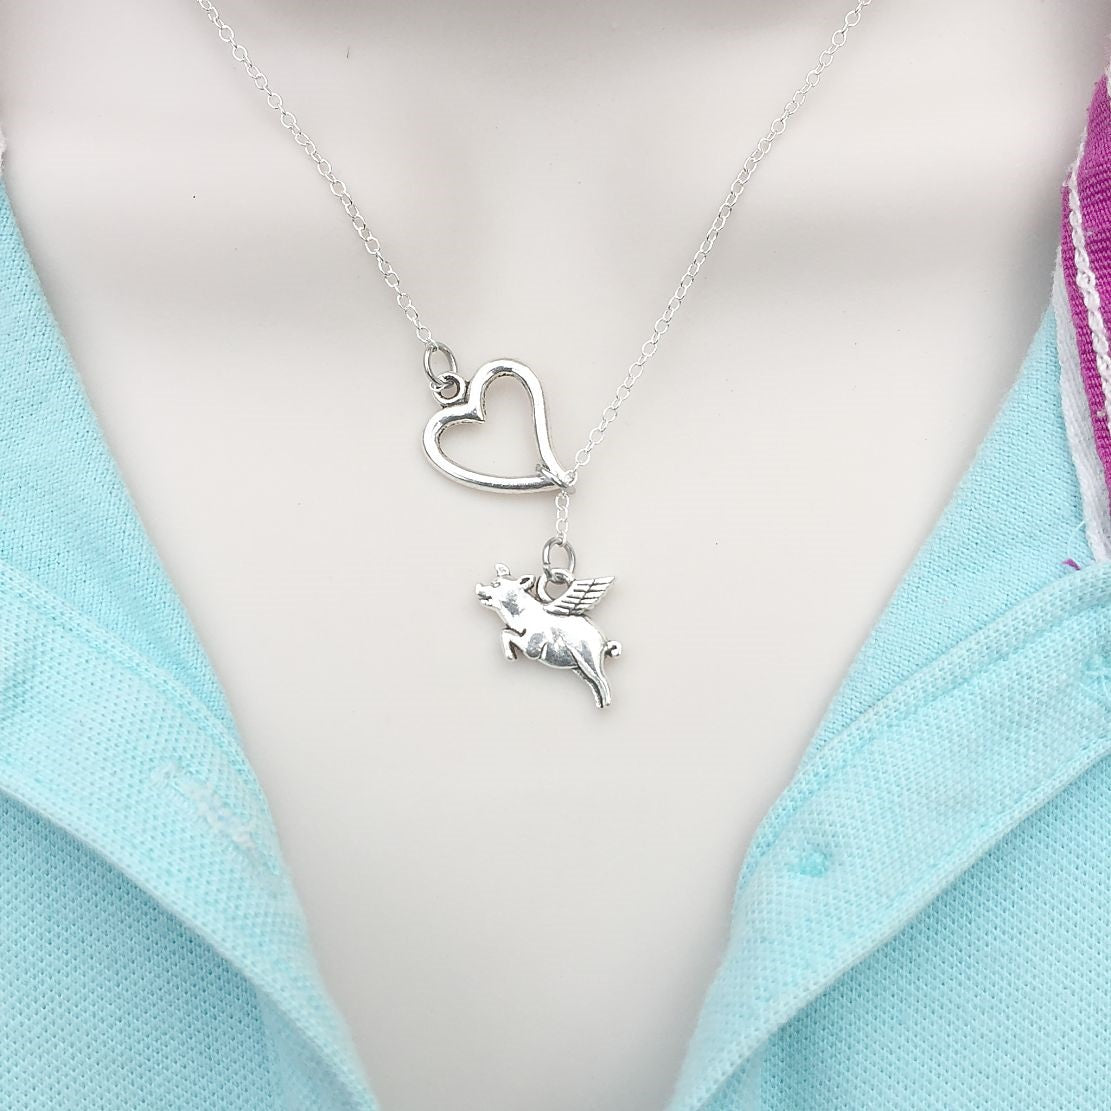 When Pigs Fly Charm Silver Lariat Y Necklace.